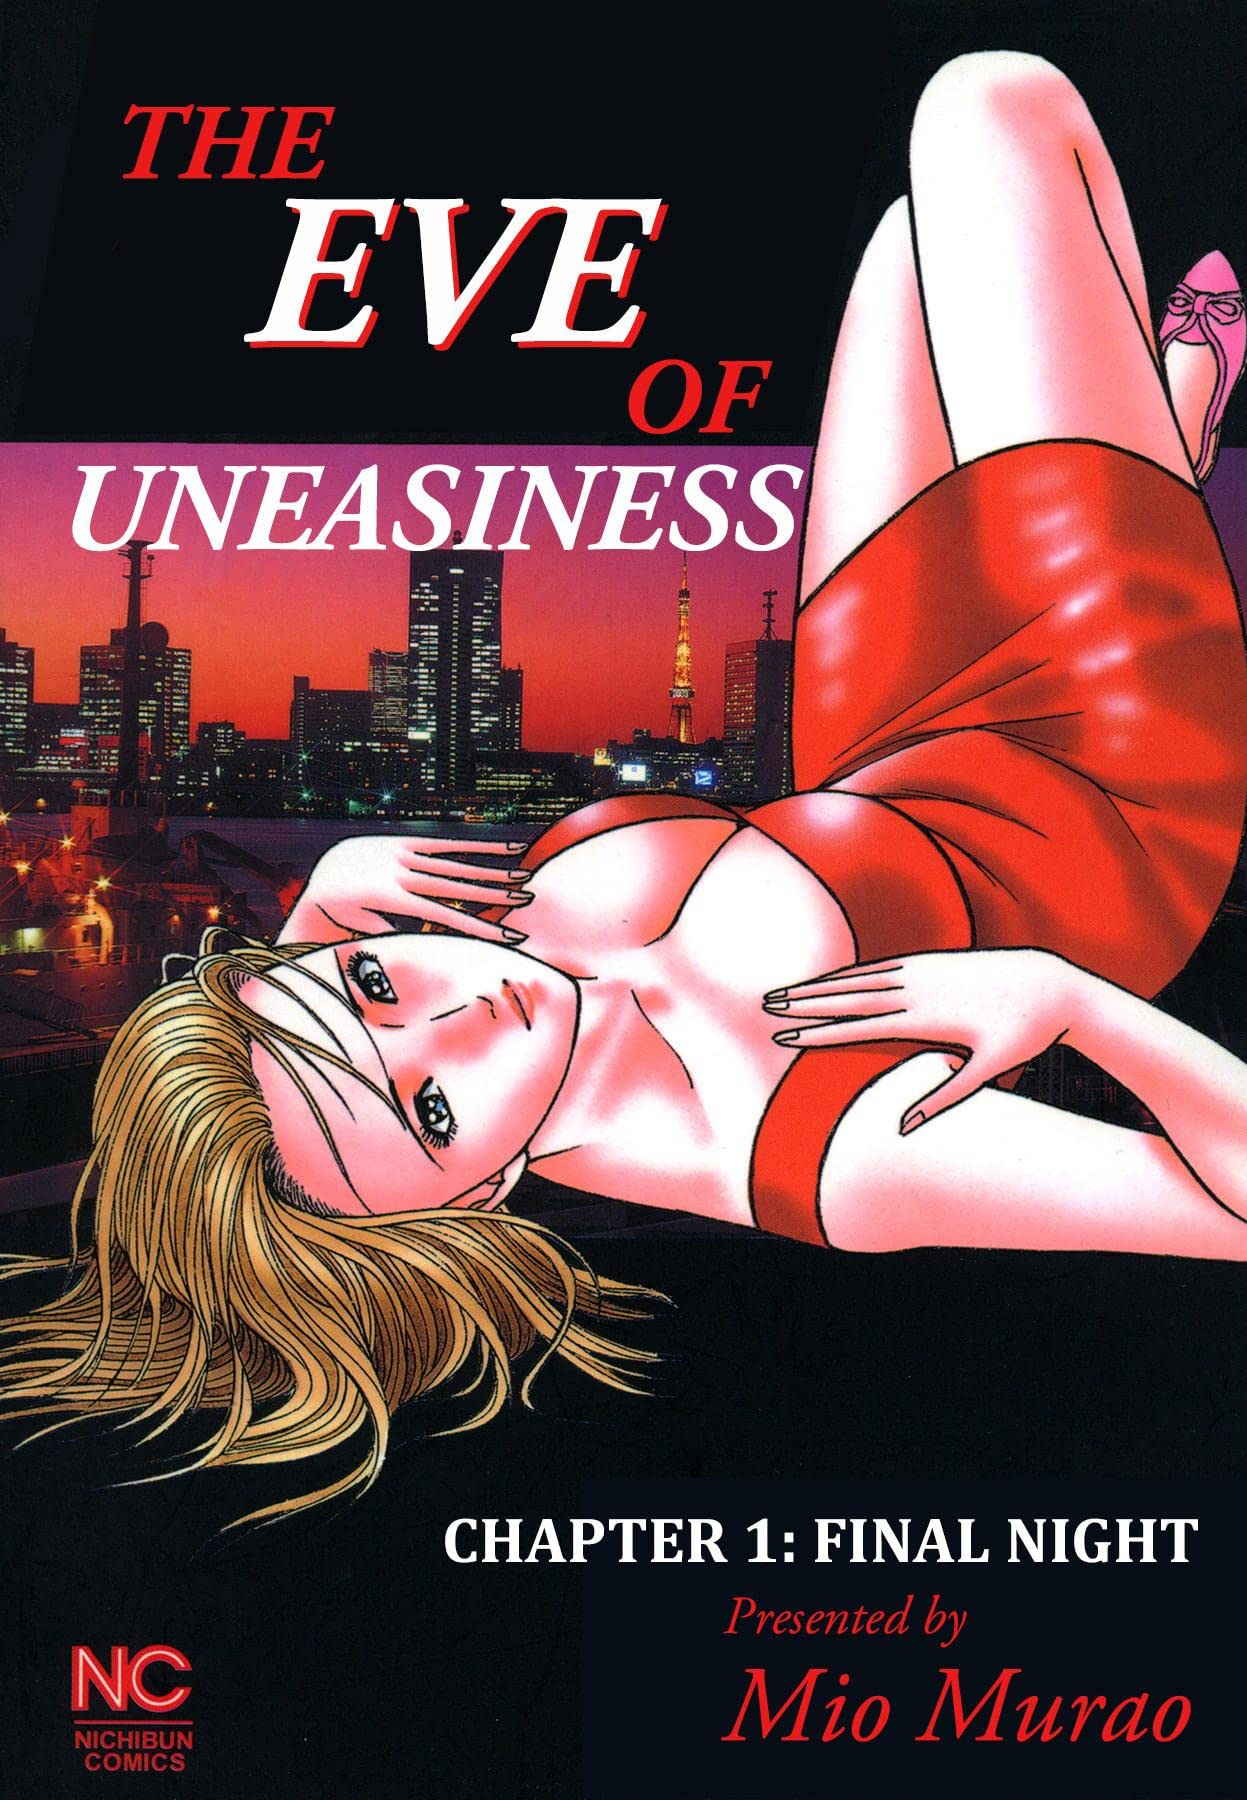 THE EVE OF UNEASINESS #5